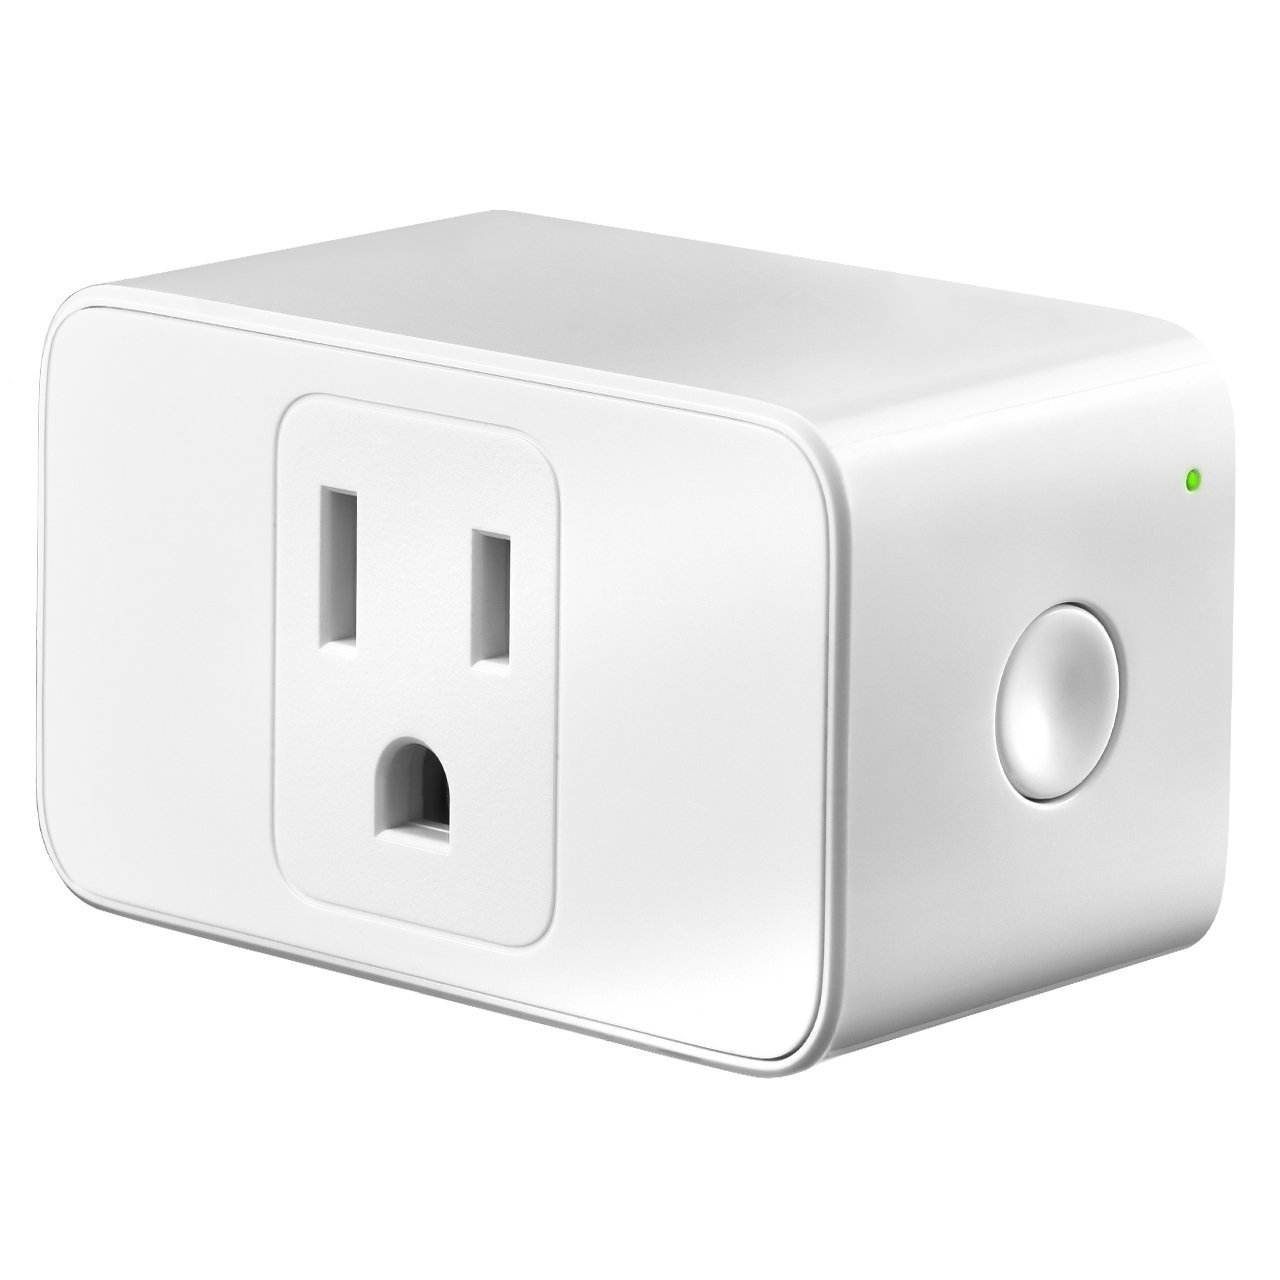 TicLife Smart Plug, ETL Safety Certification Listed Smart Outlet, Works with Alexa and Google Assistant, Wi-Fi Remote Control, 18 Months Warranty, US Only